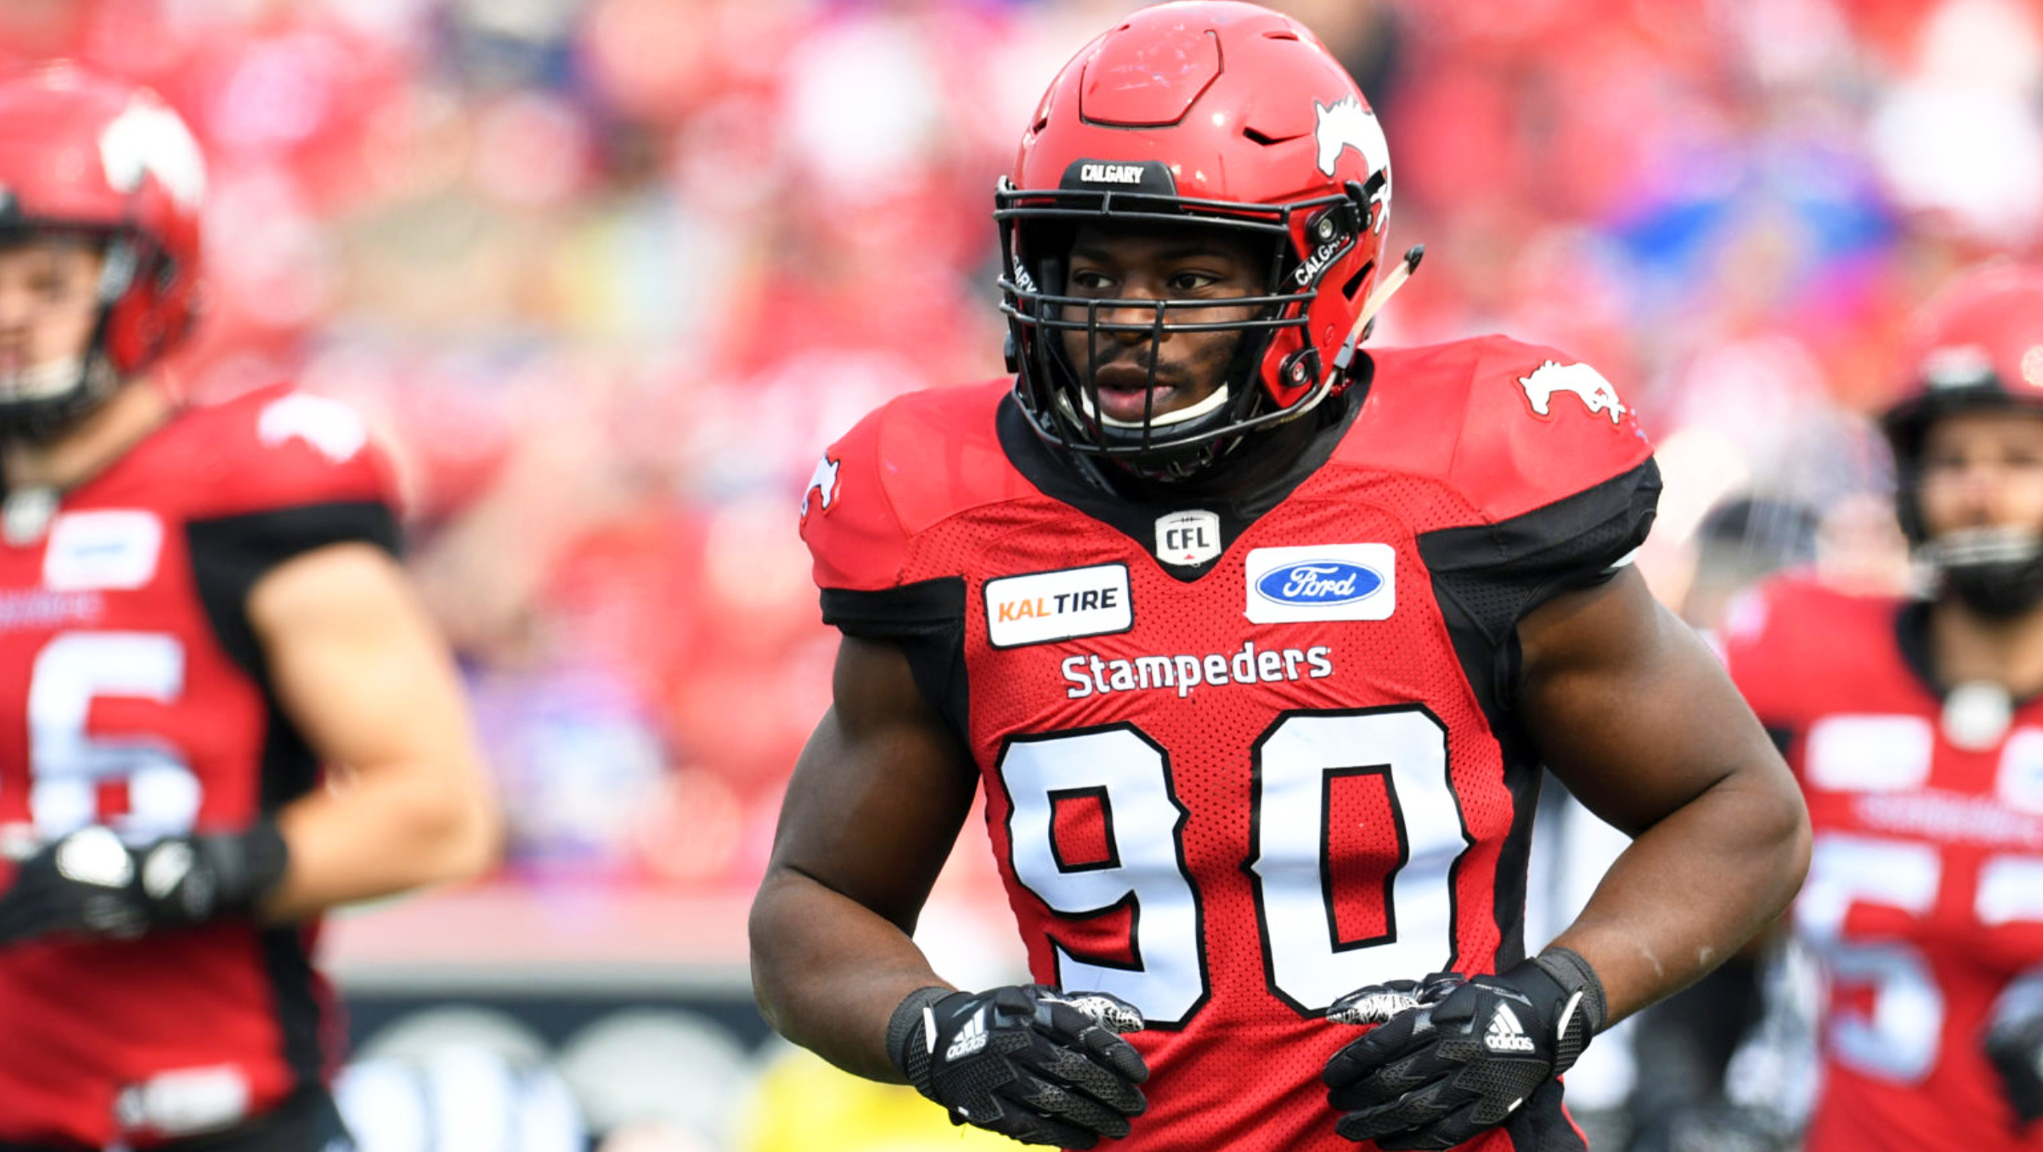 Stamps, Orimolade agree to contract extension - CFL.ca